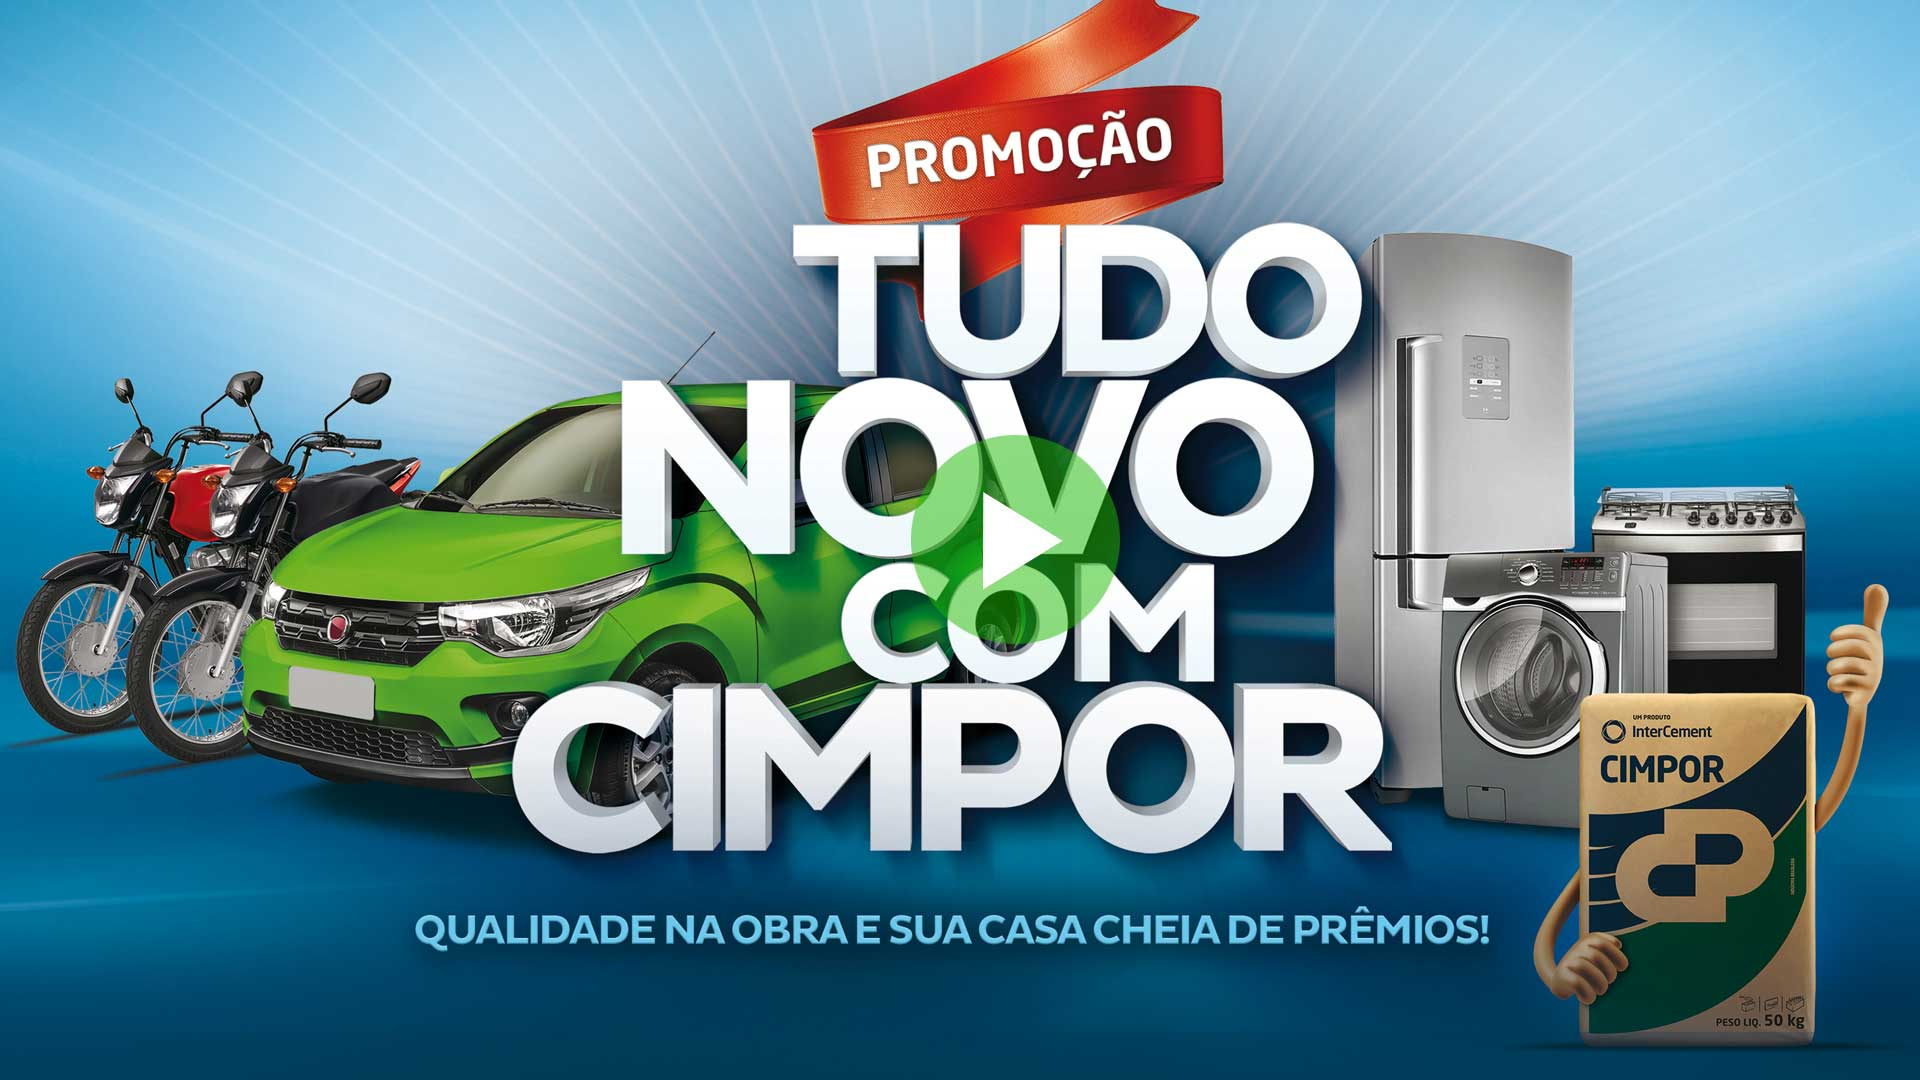 Case Intercement – Tudo Novo com Cimpor